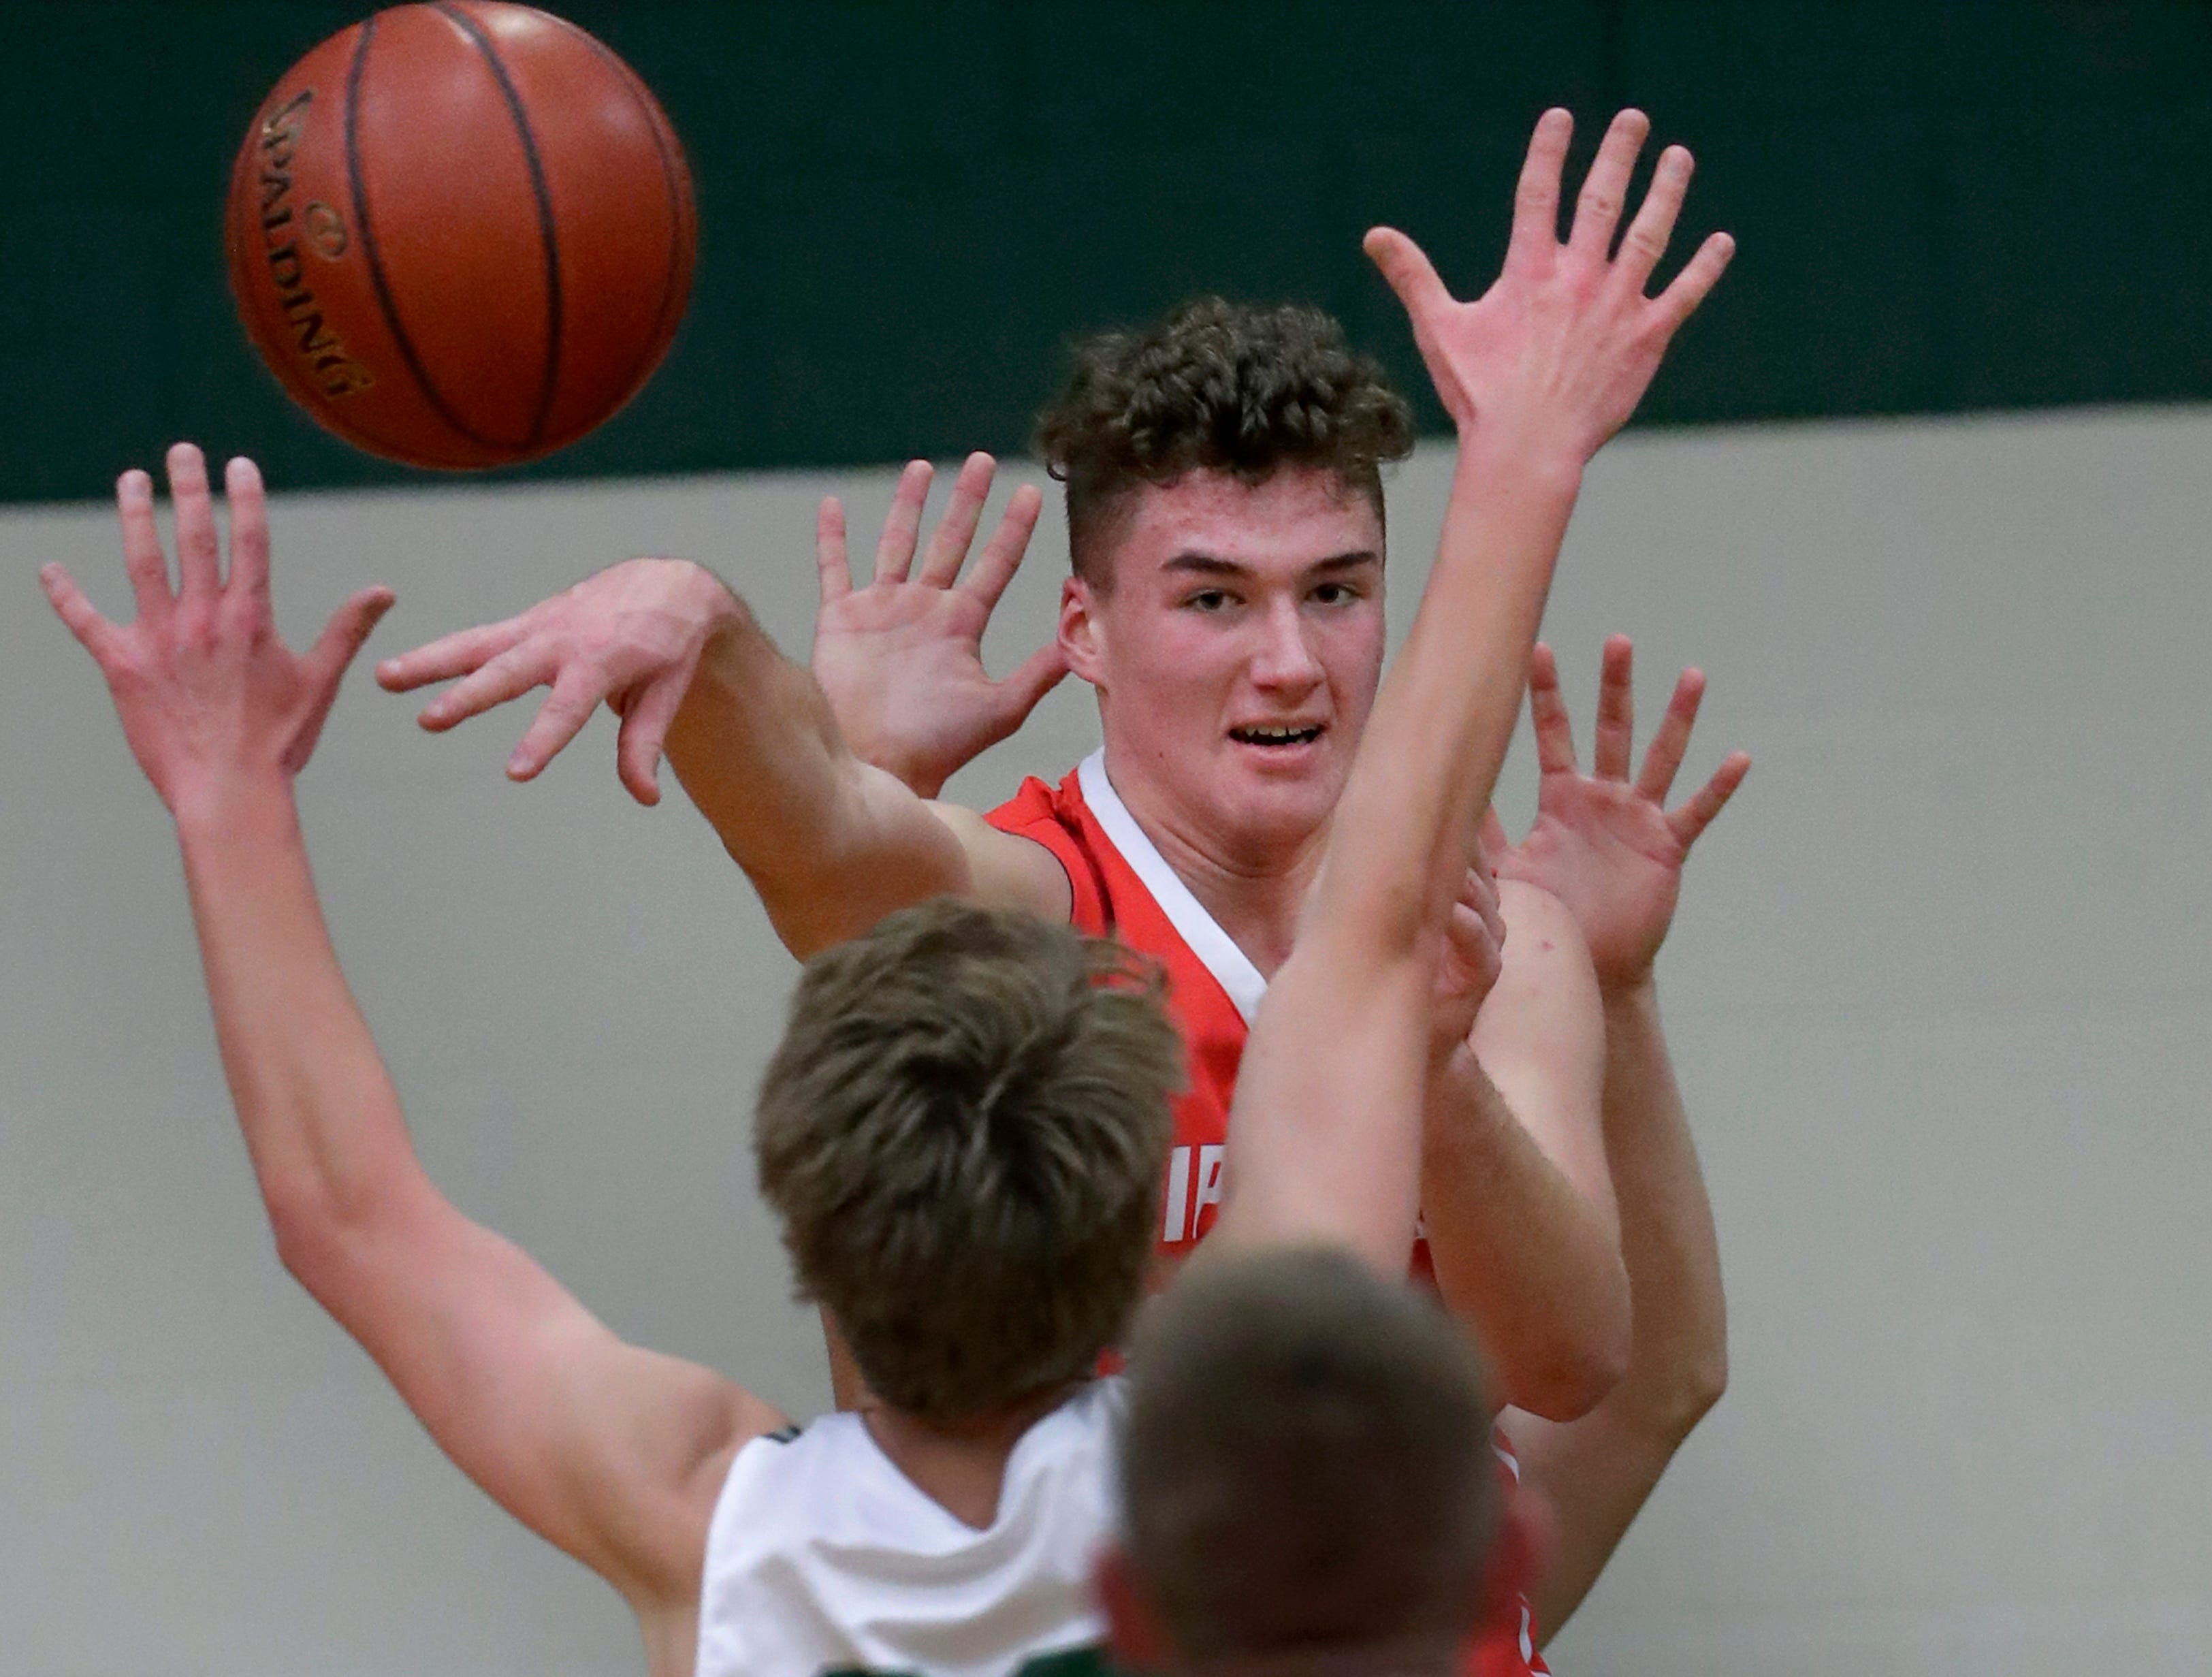 Sturgeon Bay High School's Jake Schneider (222) passes the ball to Gunnar Tebon (14) against Shiocton High School's Caden Schmidt (20) during their boys basketball game Thursday, December 27, 2018, in Shiocton, Wis. 